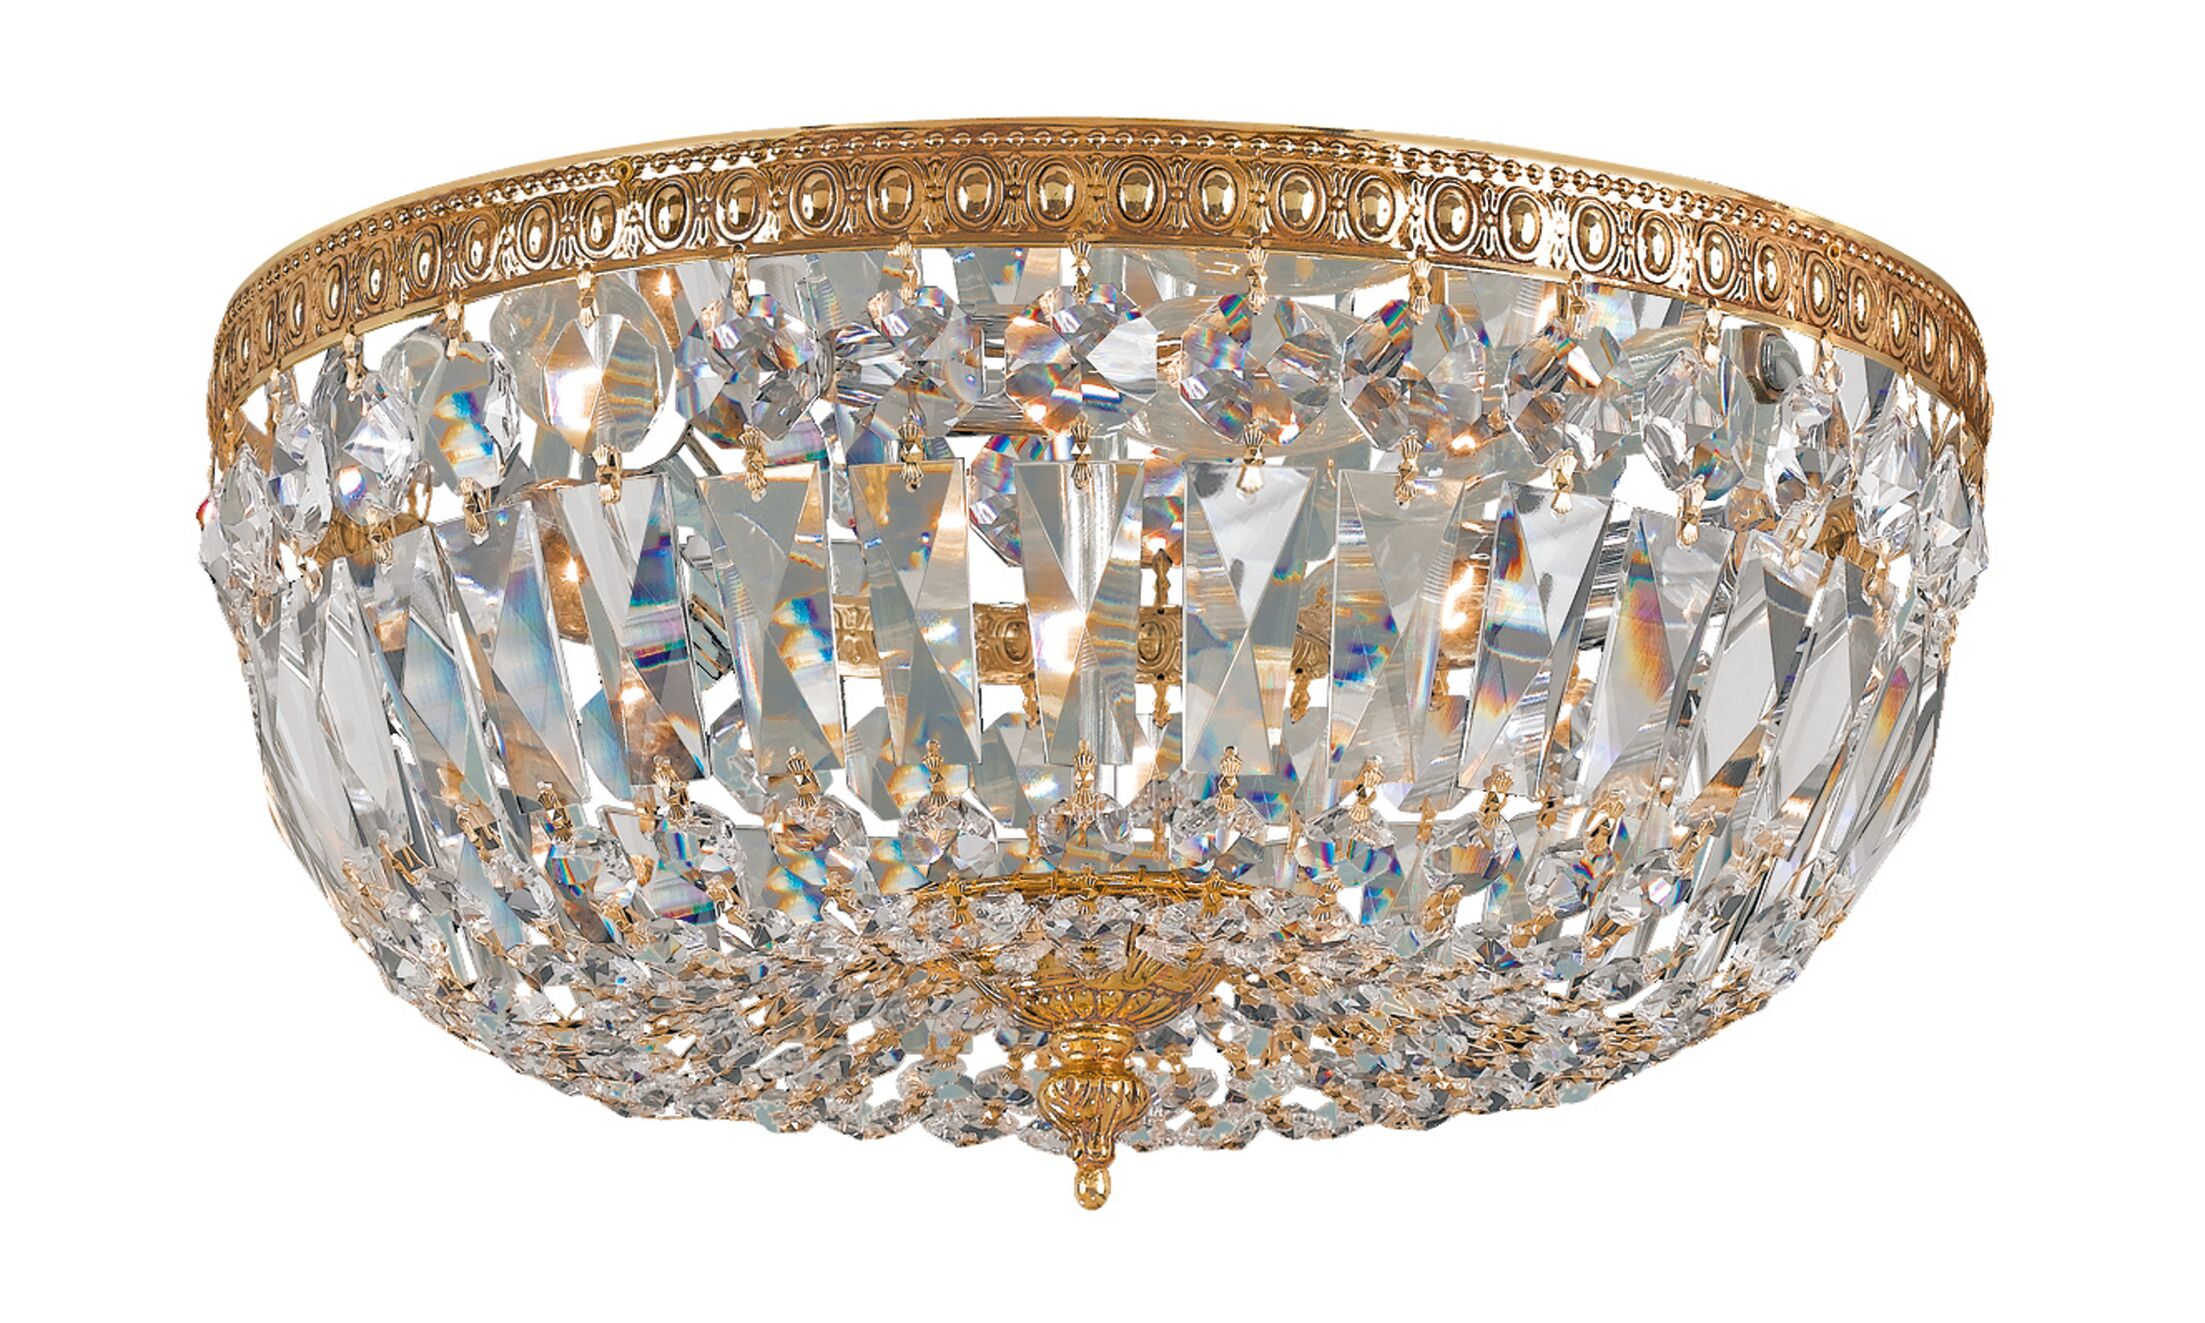 Waddell Crystal 3-Light Flush Mount Crystal: Hand Polished